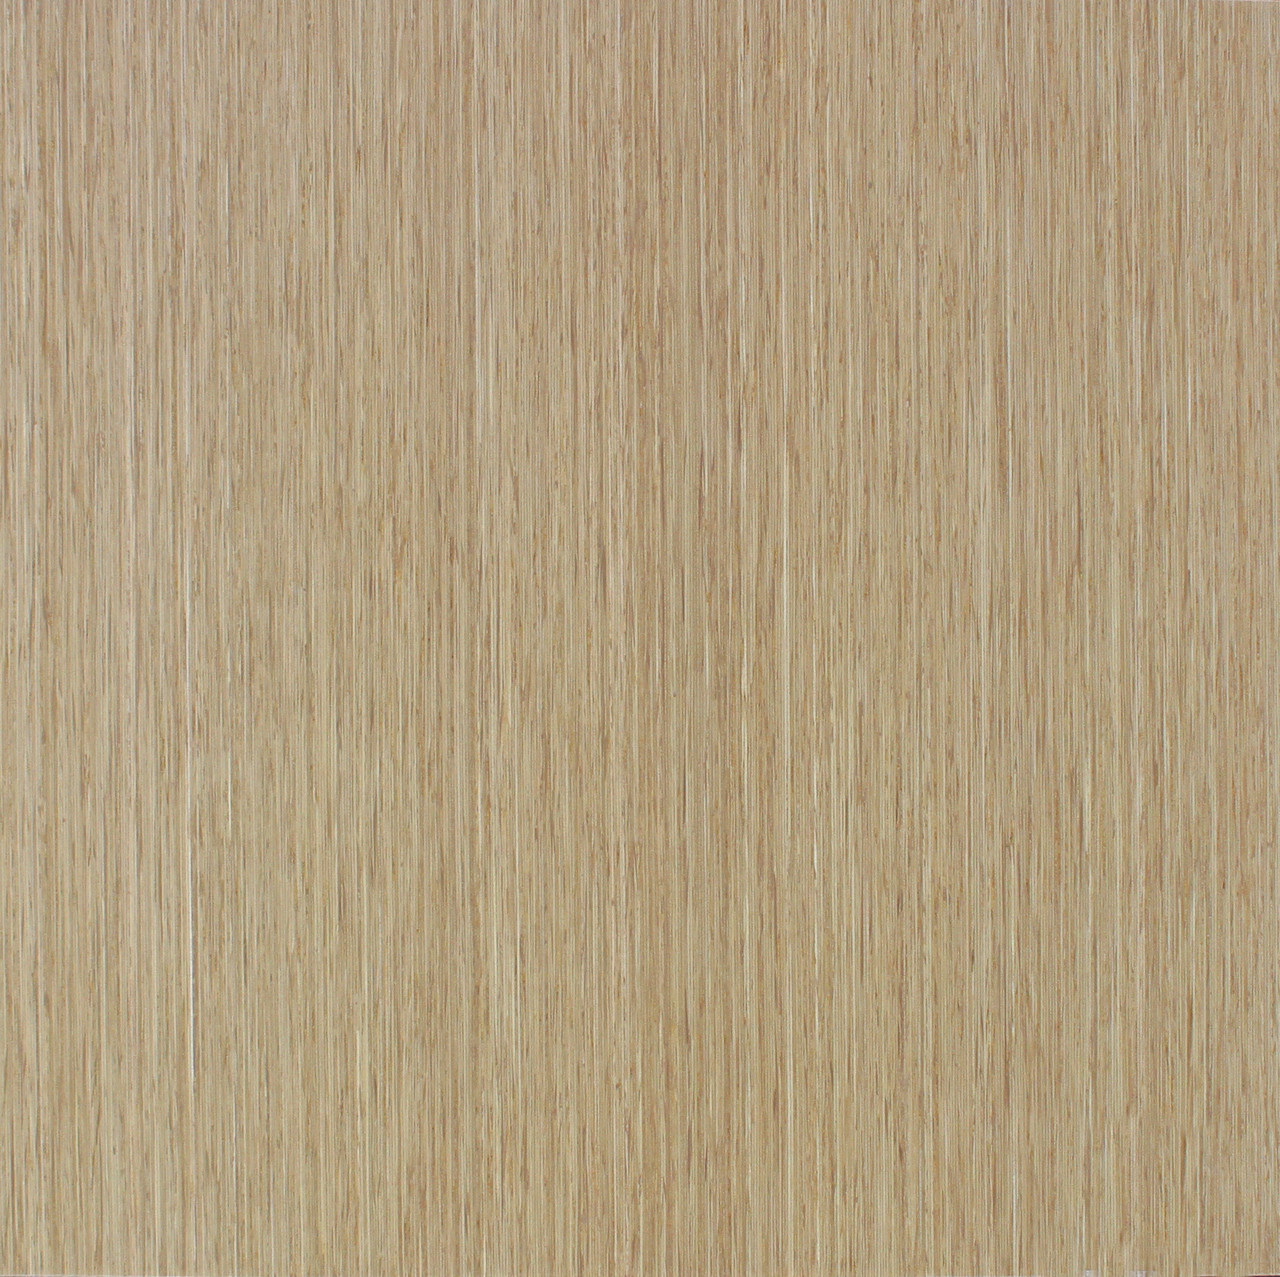 White Oak Linea Wood Veneer By Danzer Oakwood Veneer Company